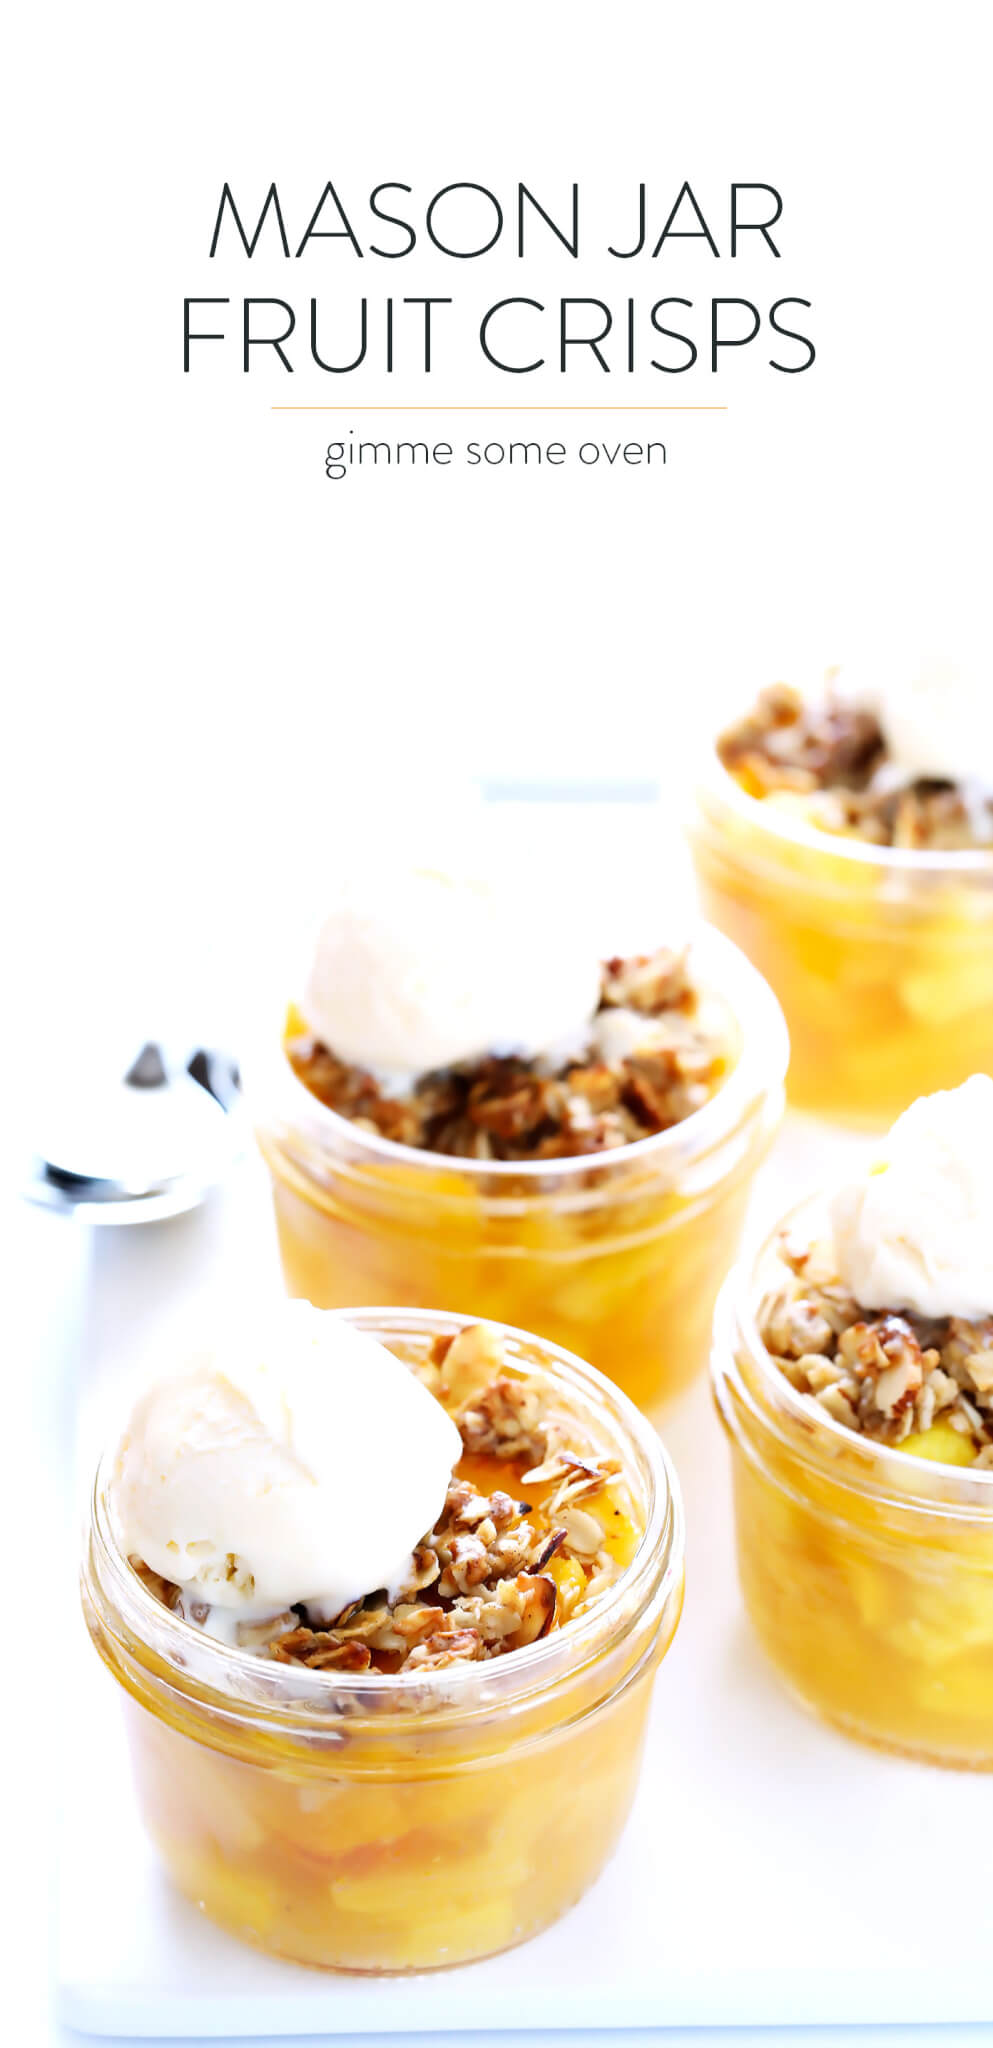 These Mini Mason Jar Fruit Crisps are easy to make with your favorite fruit (peaches, berries, apples, pears, pineapple, you pick!), they're topped with a delicious oatmeal-almond crumble, and they are SO tasty! The perfect sweet and simple summer dessert recipe! | gimmesomeoven.com